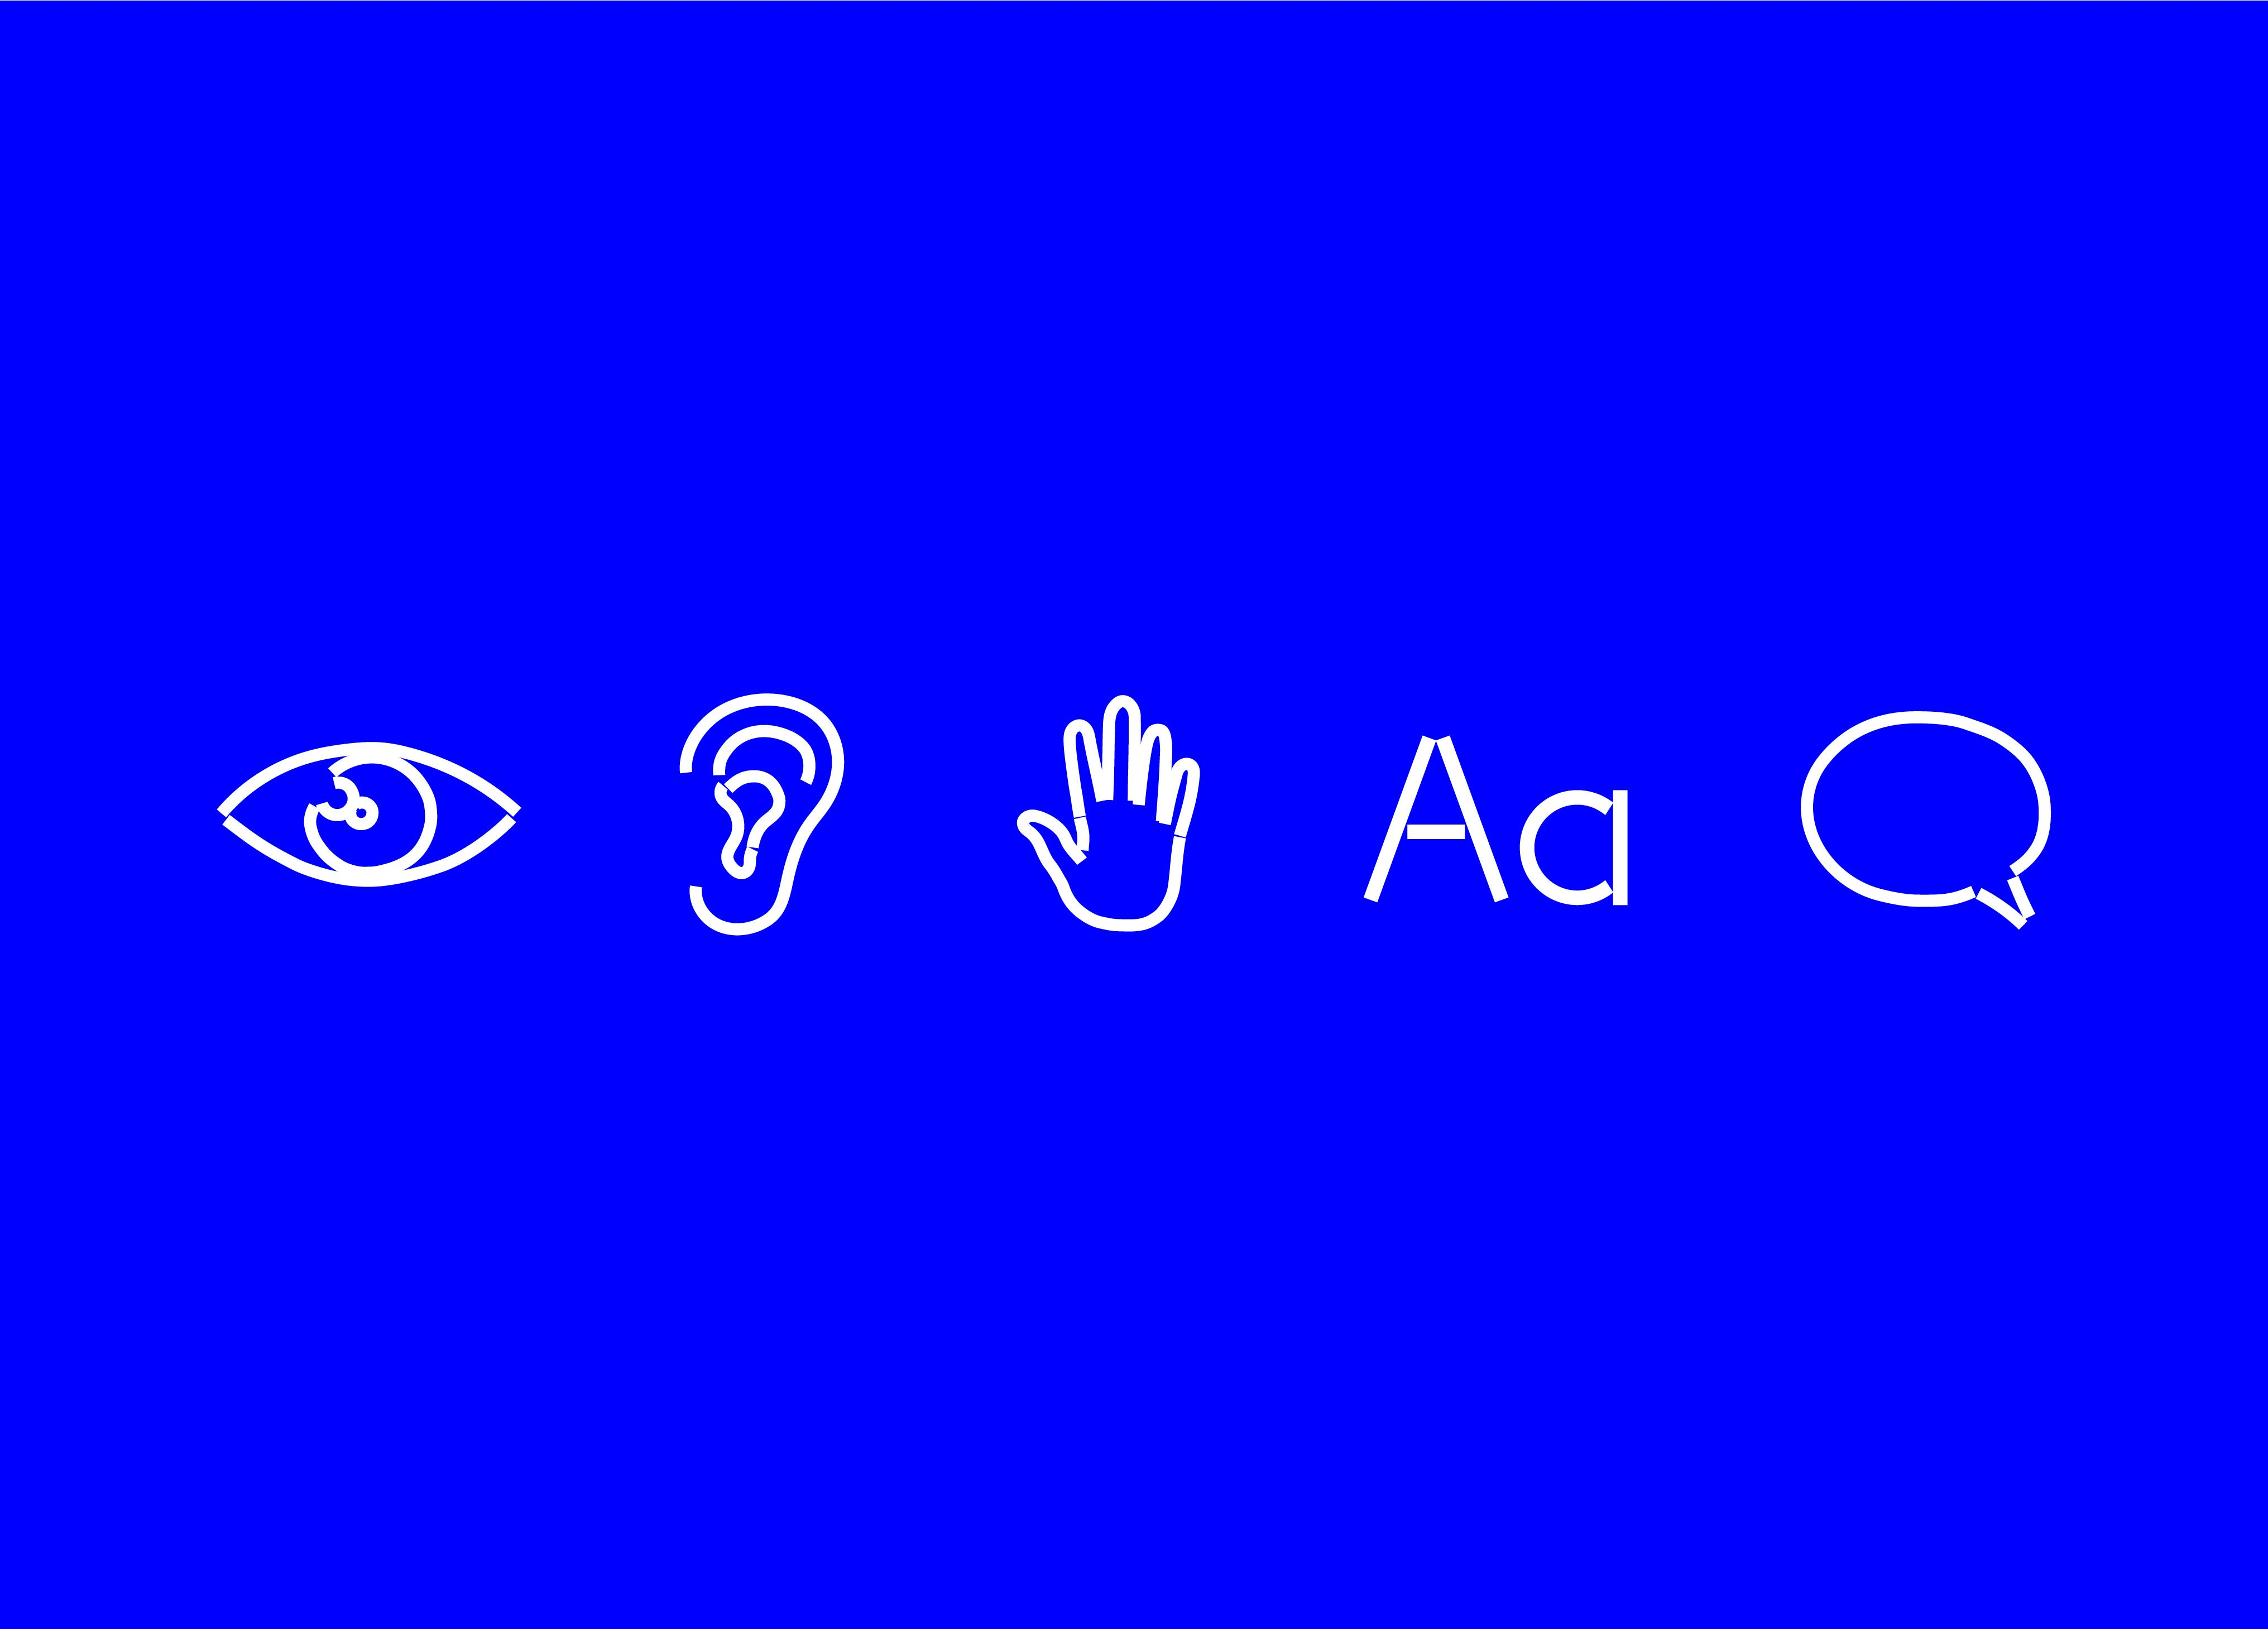 Five symbols made of white lines on a bright blue background represent an eye, an ear, a hand, the letter A, and a speech bubble.